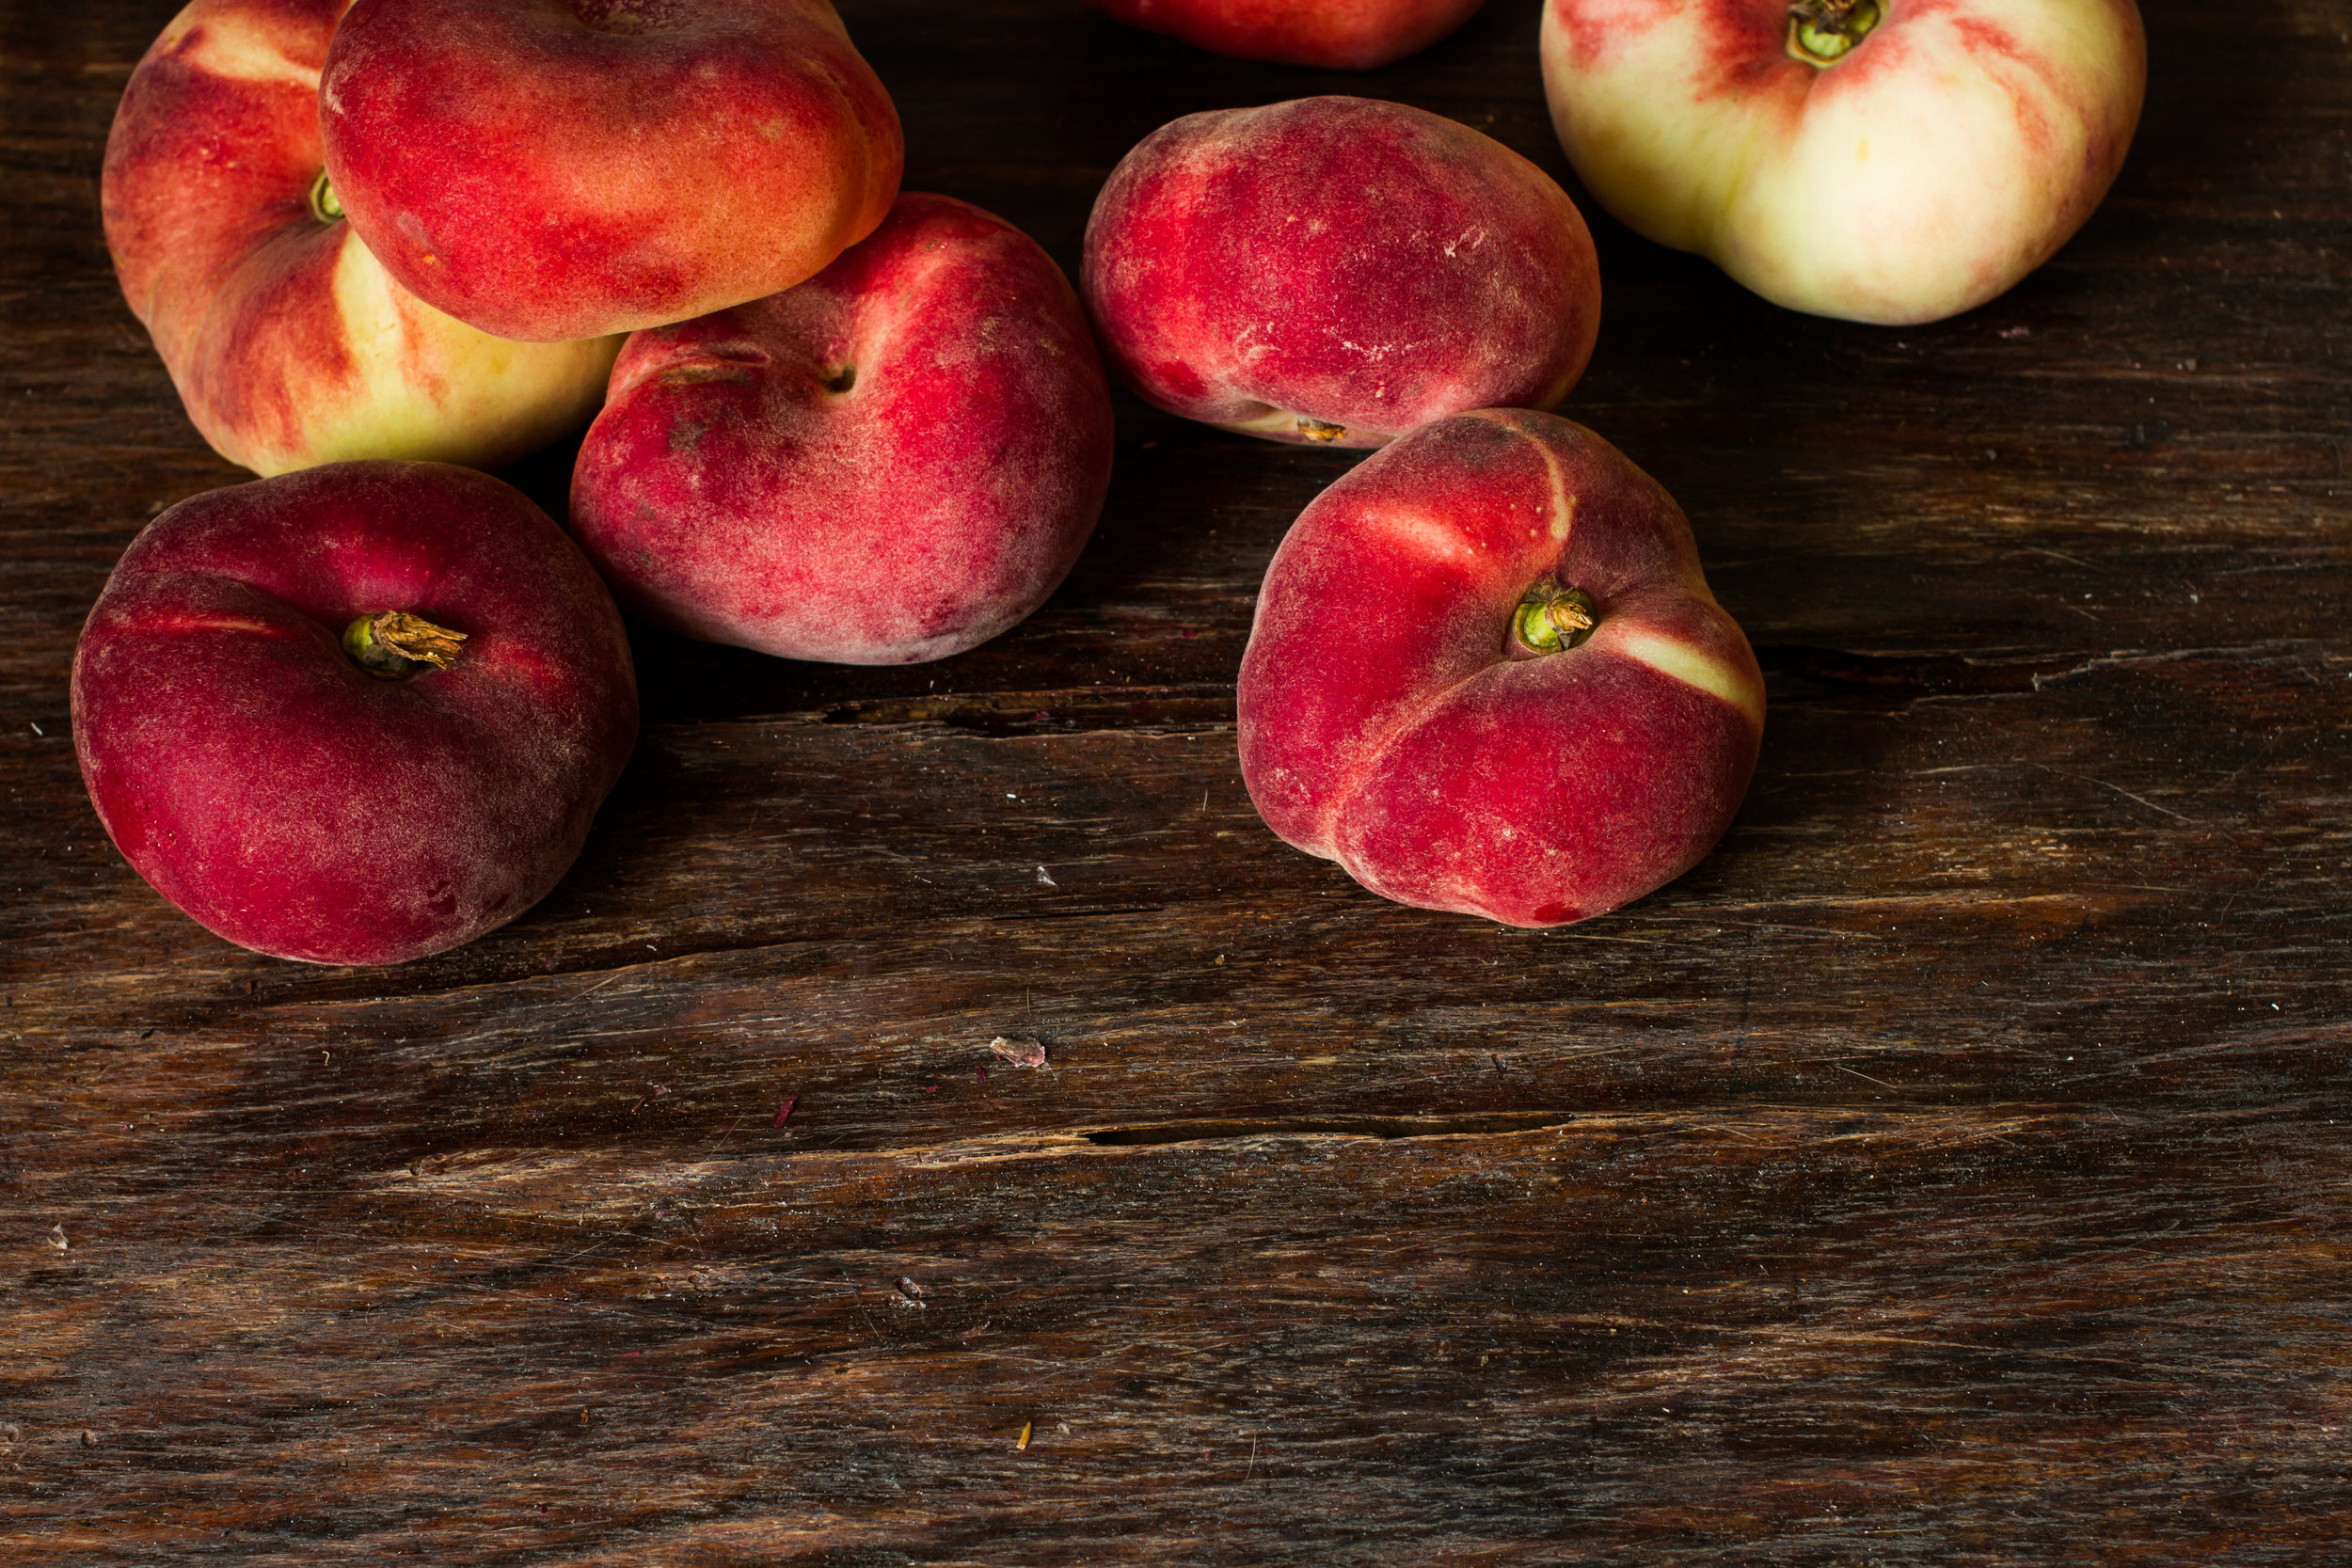 flat-ripe-peach-and-the-usual-peach-on-a-wooden-background-484613428_5184x3456.jpeg